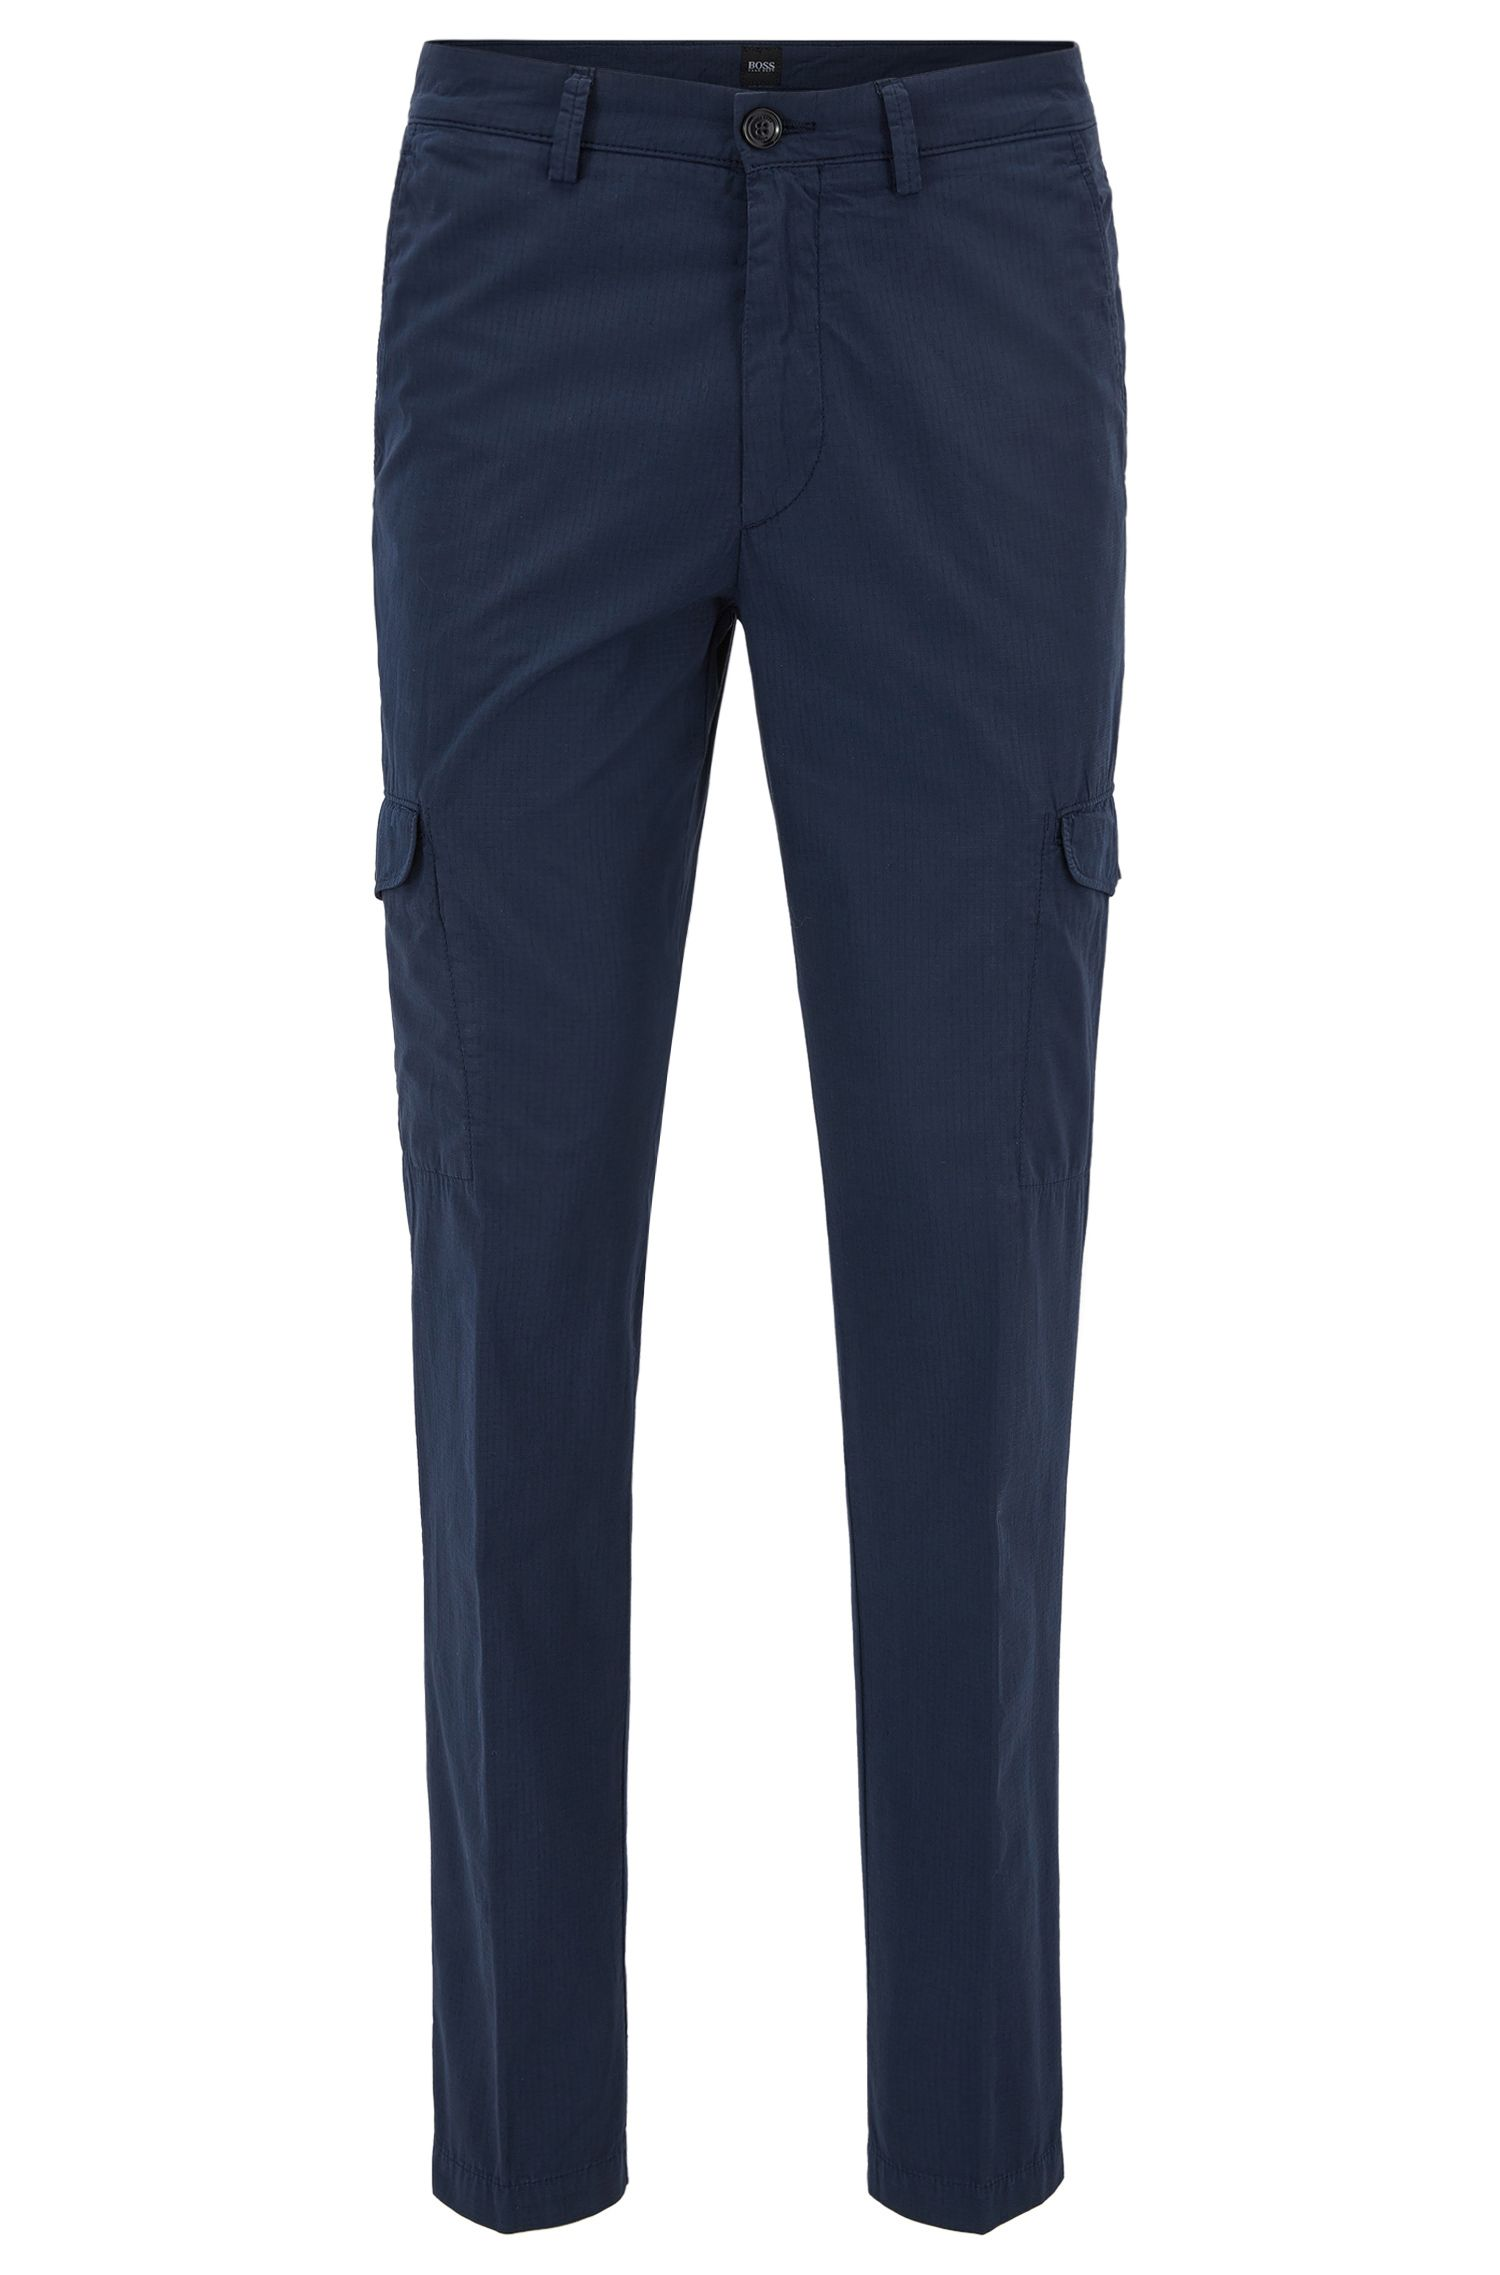 Cotton Cargo Pant, Slim Fit | Kailo D